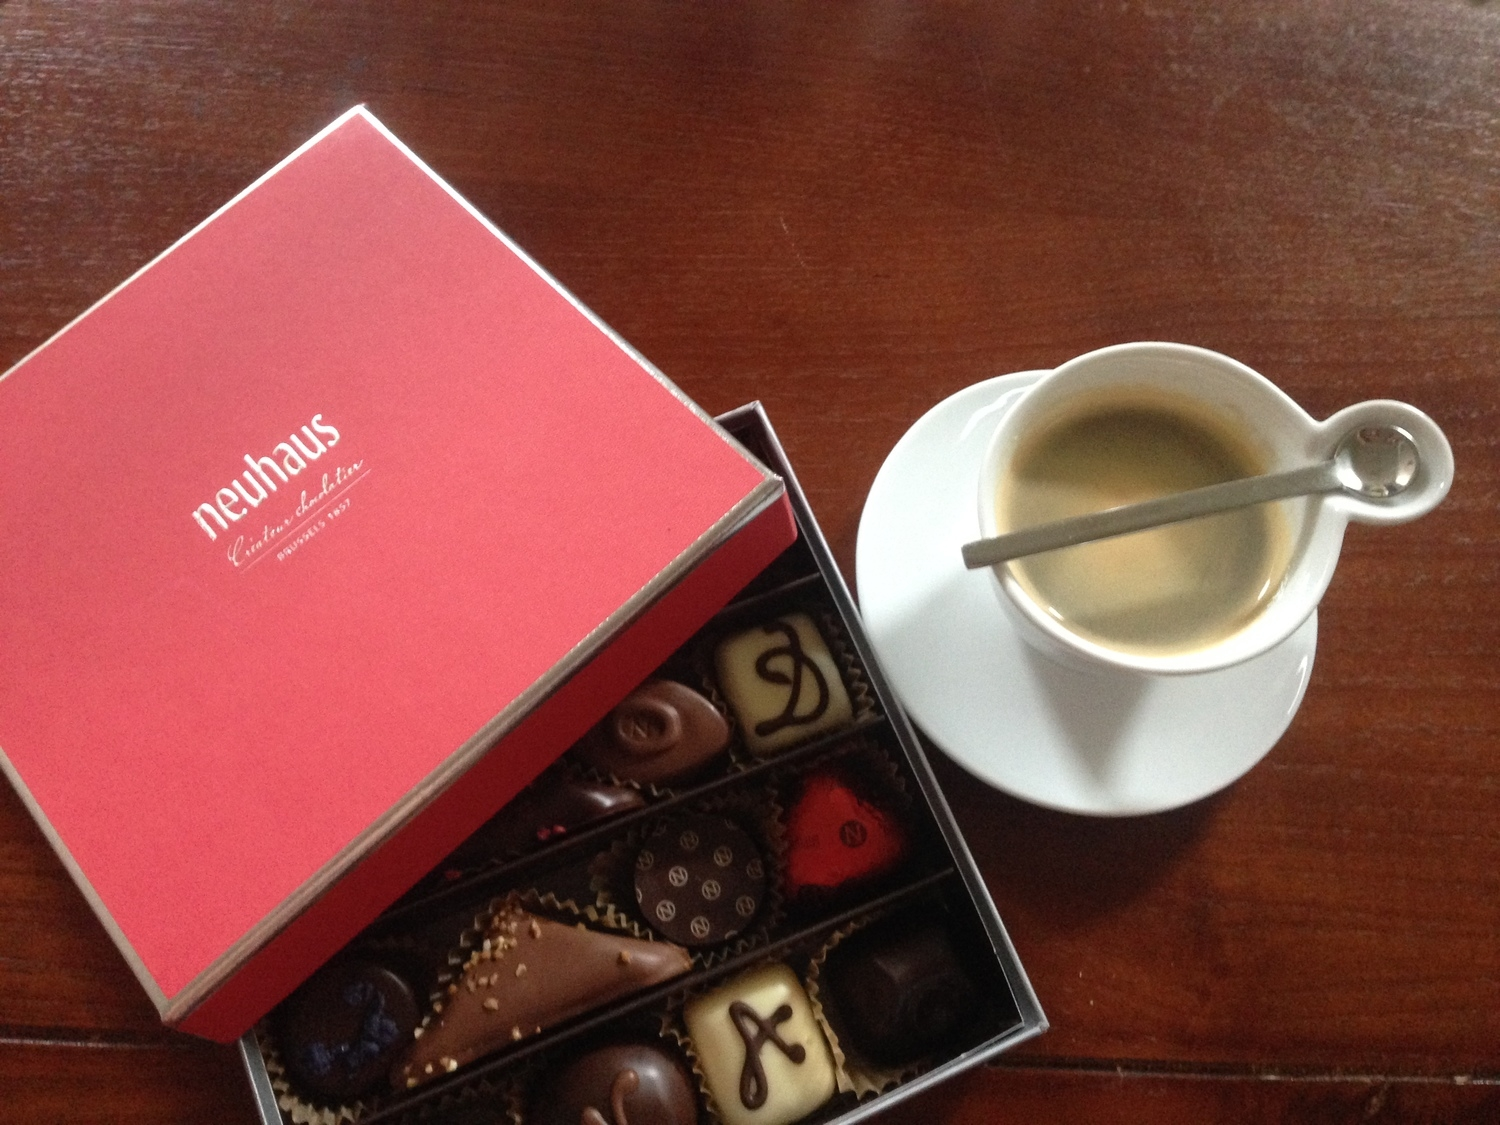 For more Neuhaus information check out their  website.